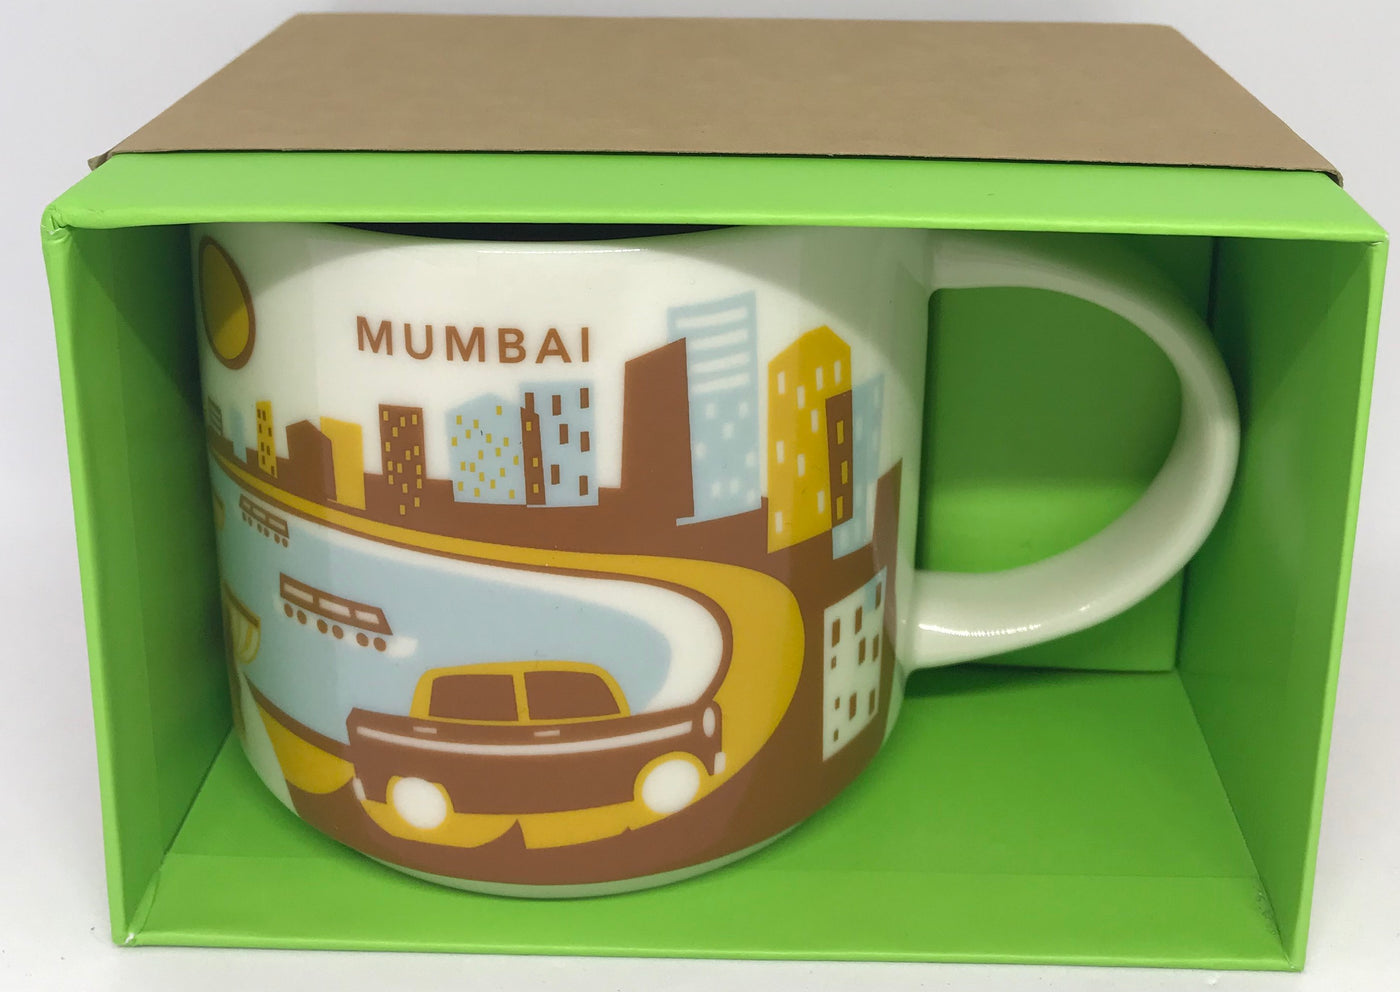 India Are Mumbai Coffee You Ceramic New W Mug Box Here Collection Starbucks VpqzMGLSU